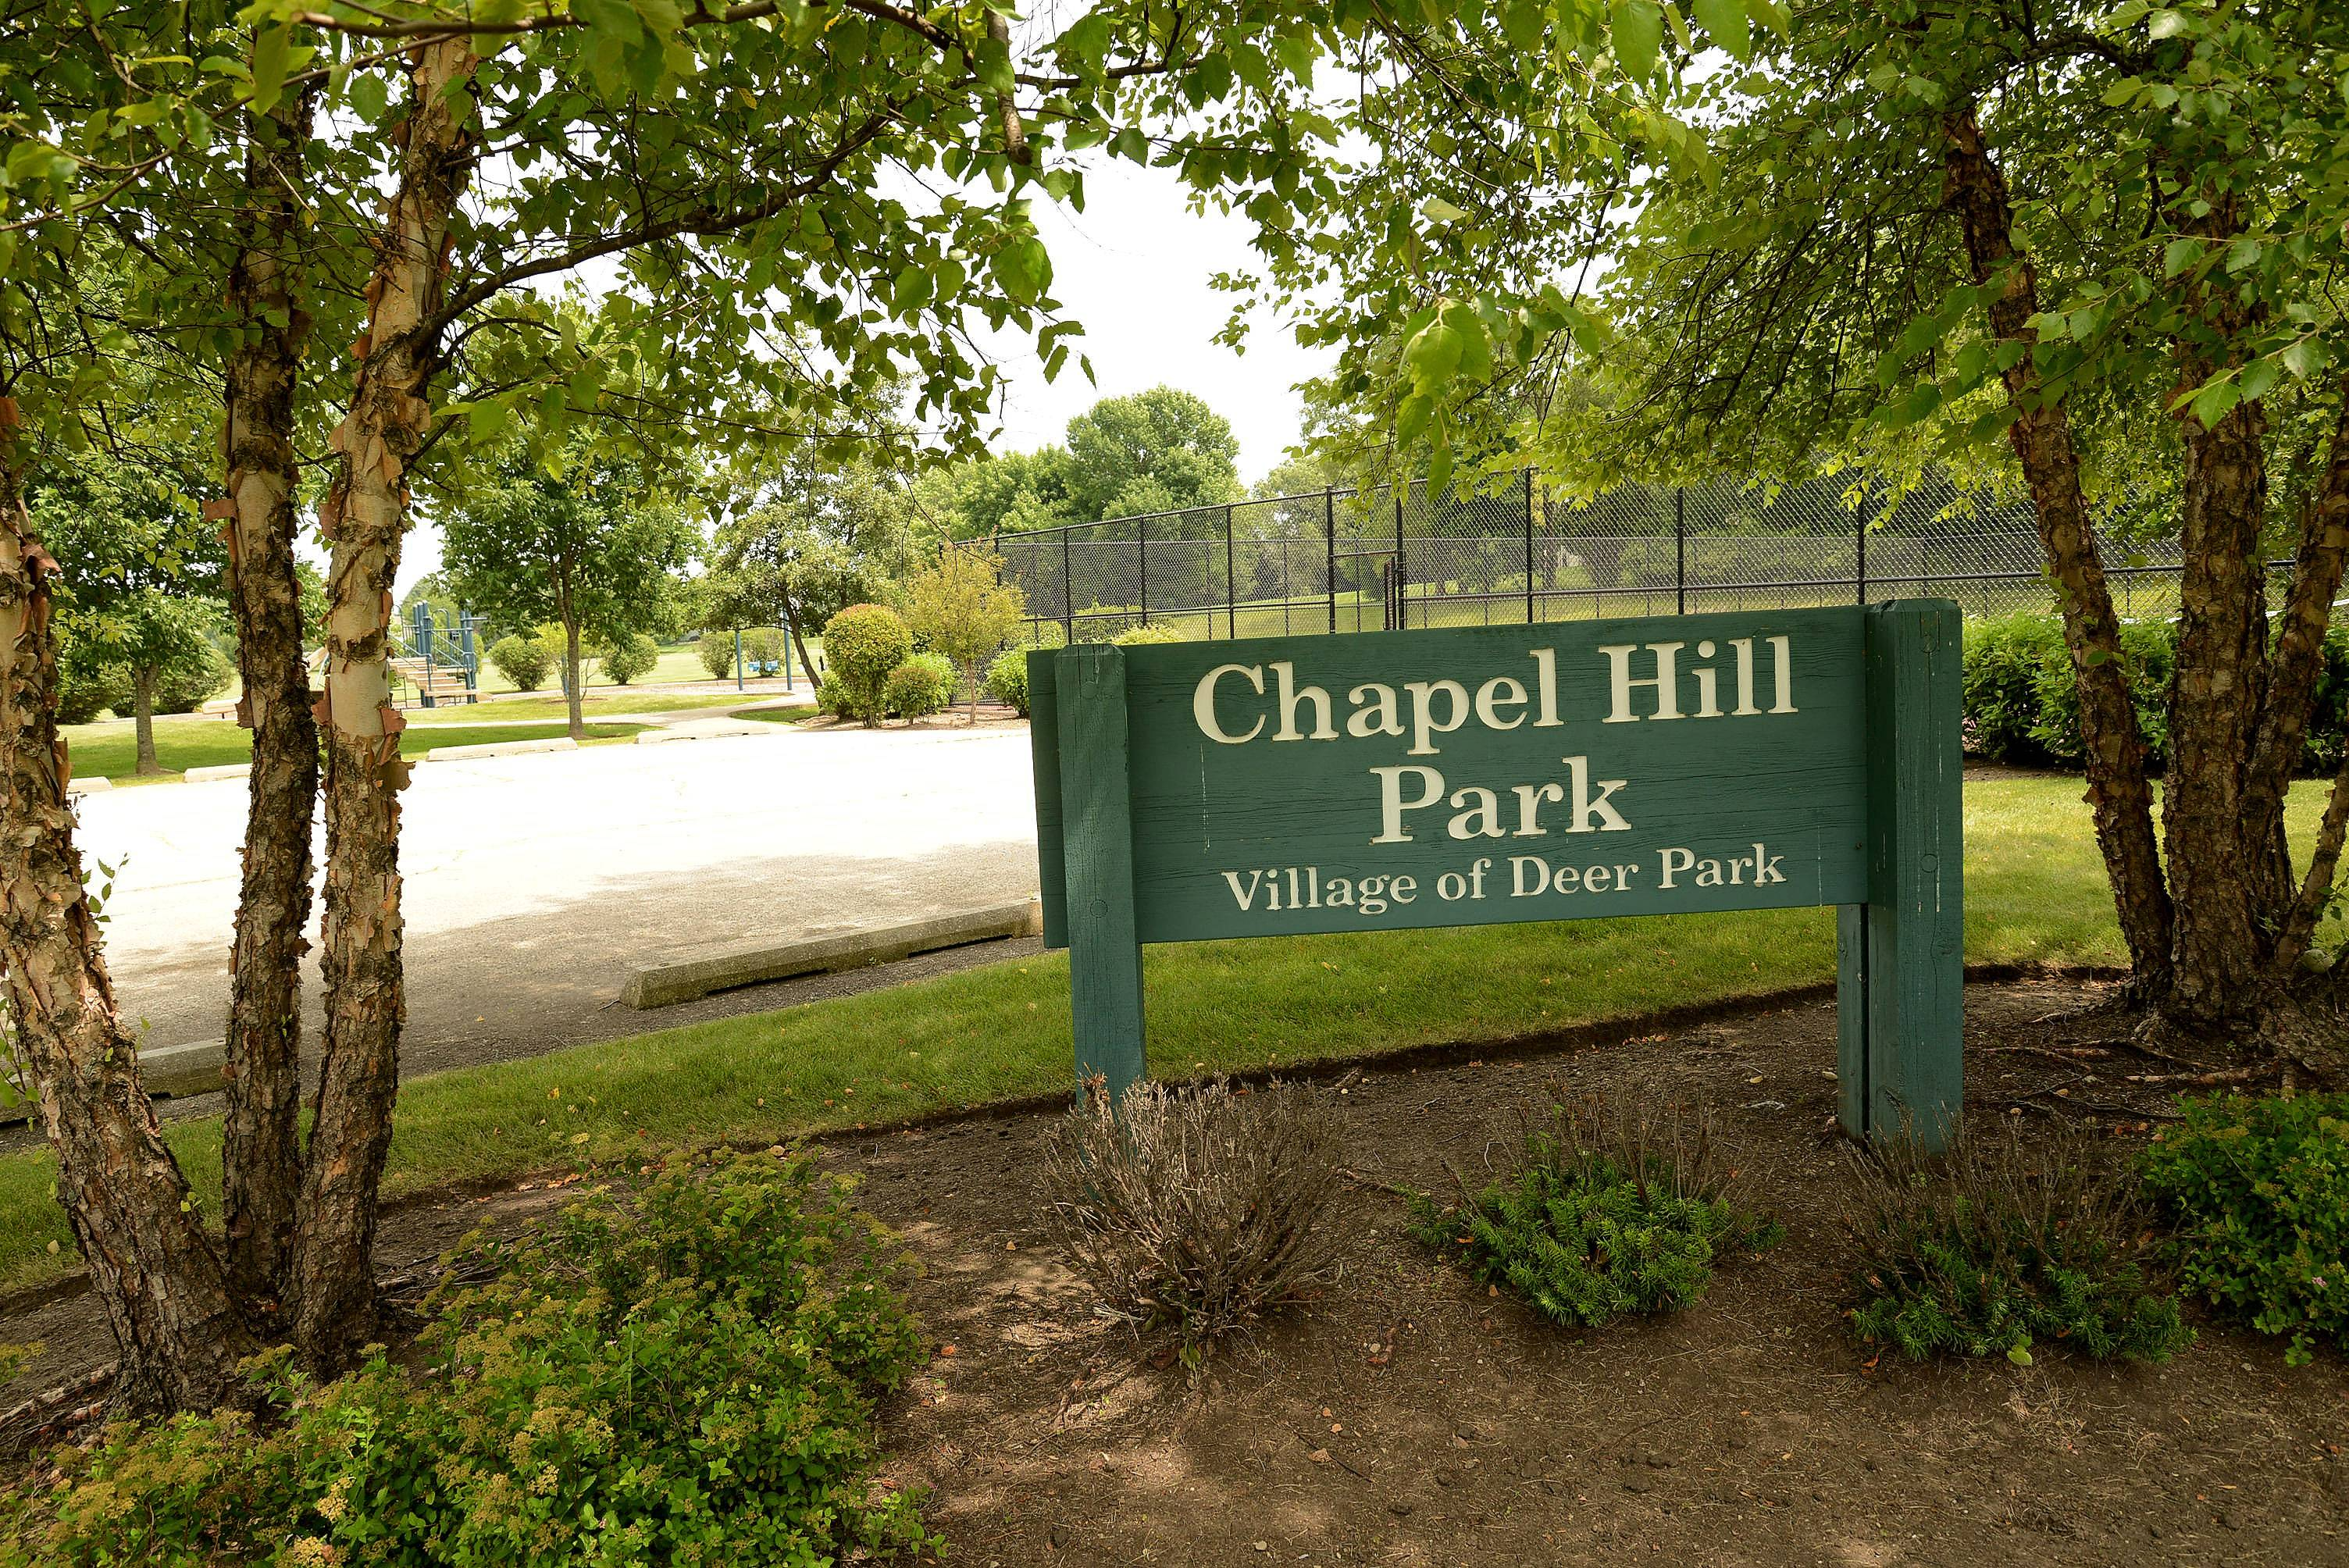 Chapel Hill Park offers recreational space for residents of the subdivision.